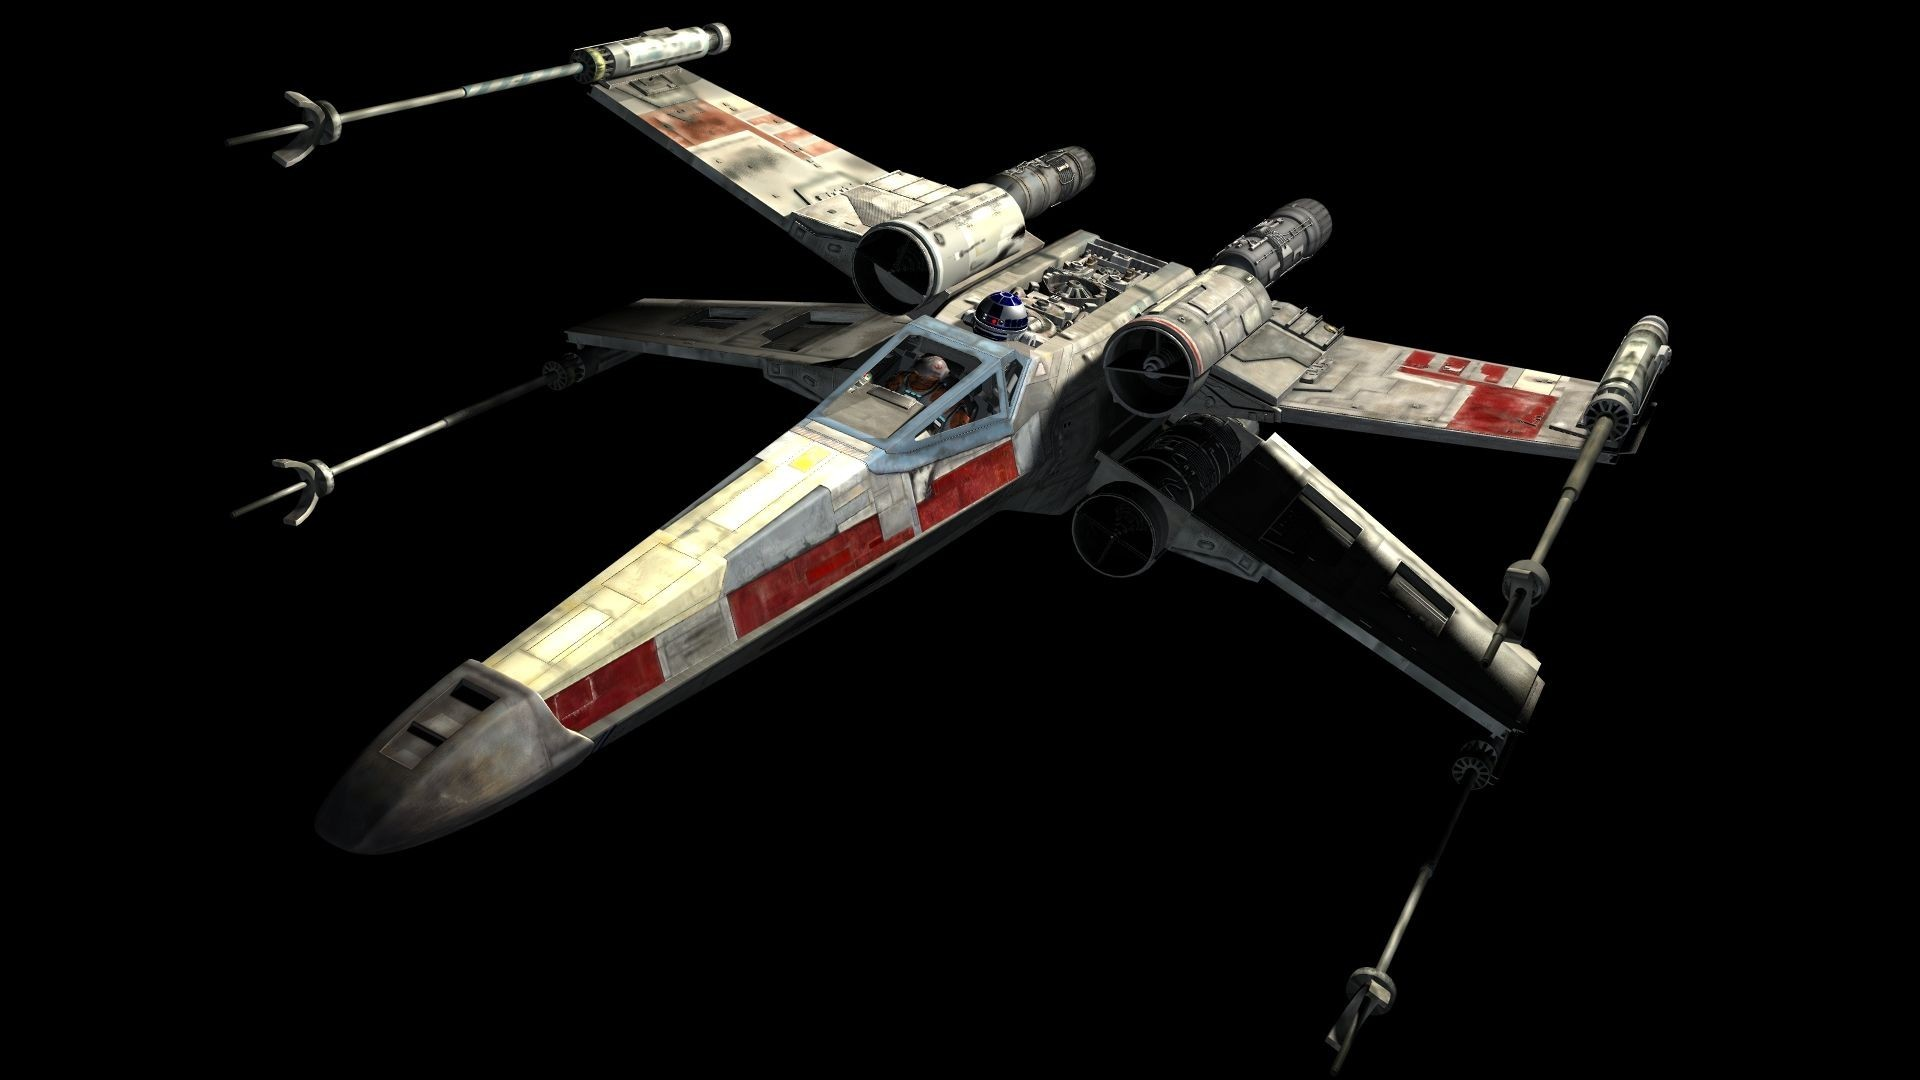 General Star Wars X-wing science fiction R2-D2 space movies black  background